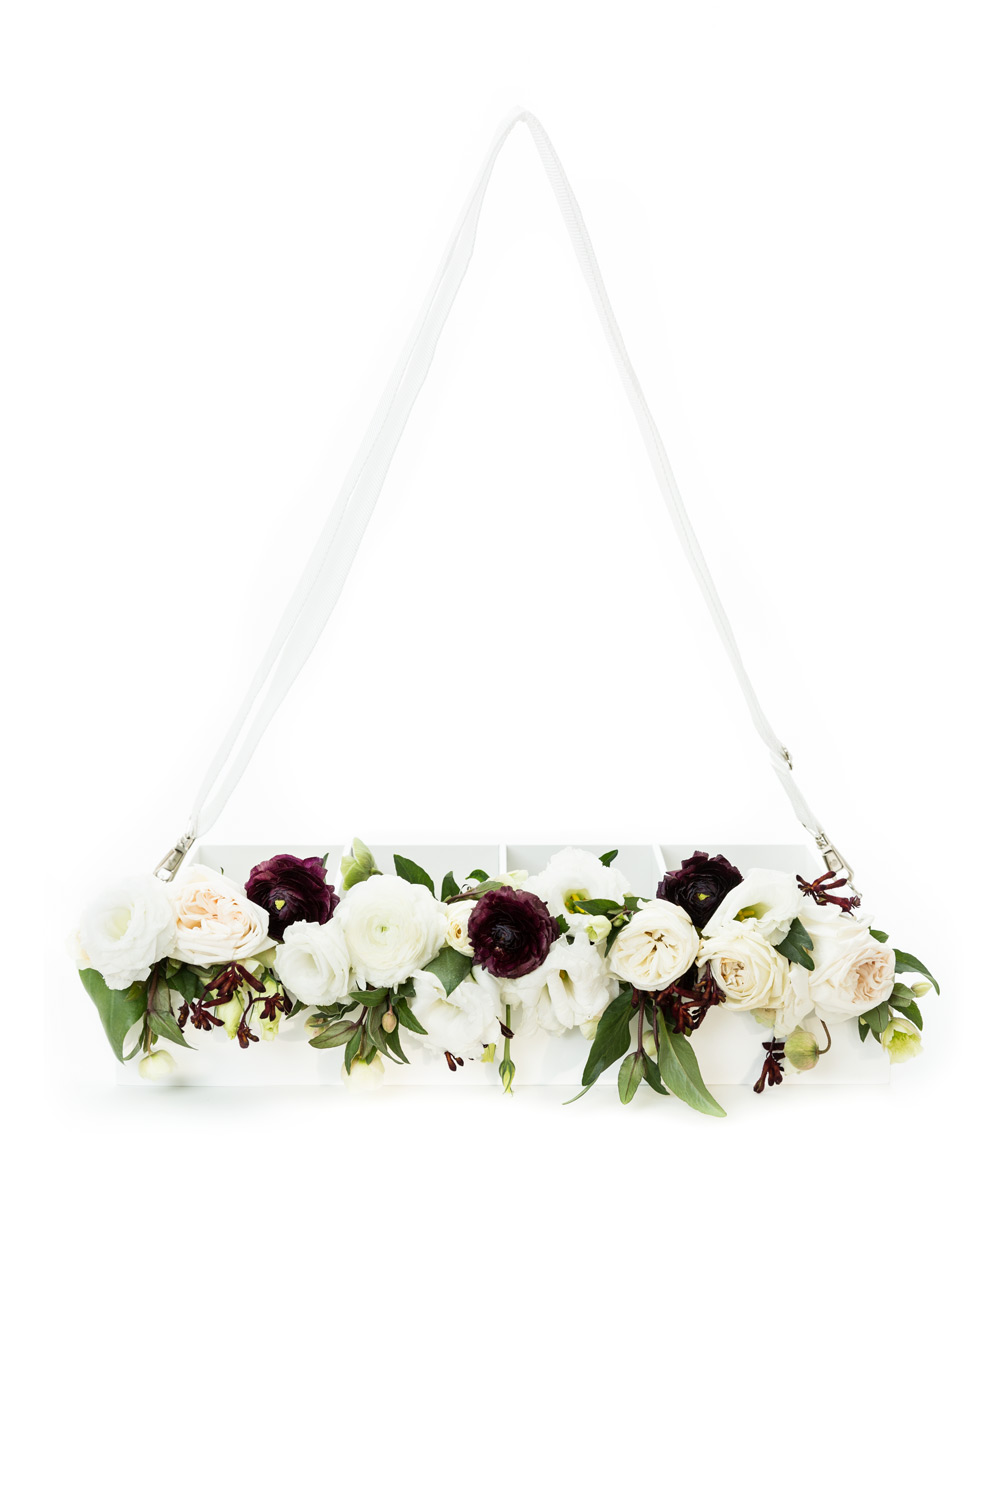 Wearable trays for your wedding vendors to carry fun items for your guests like flowers to throw after your grand entrance by Amorology Weddings and Backup Backdrops, #WeddingMinimalismProject by Cavin Elizabeth Photography